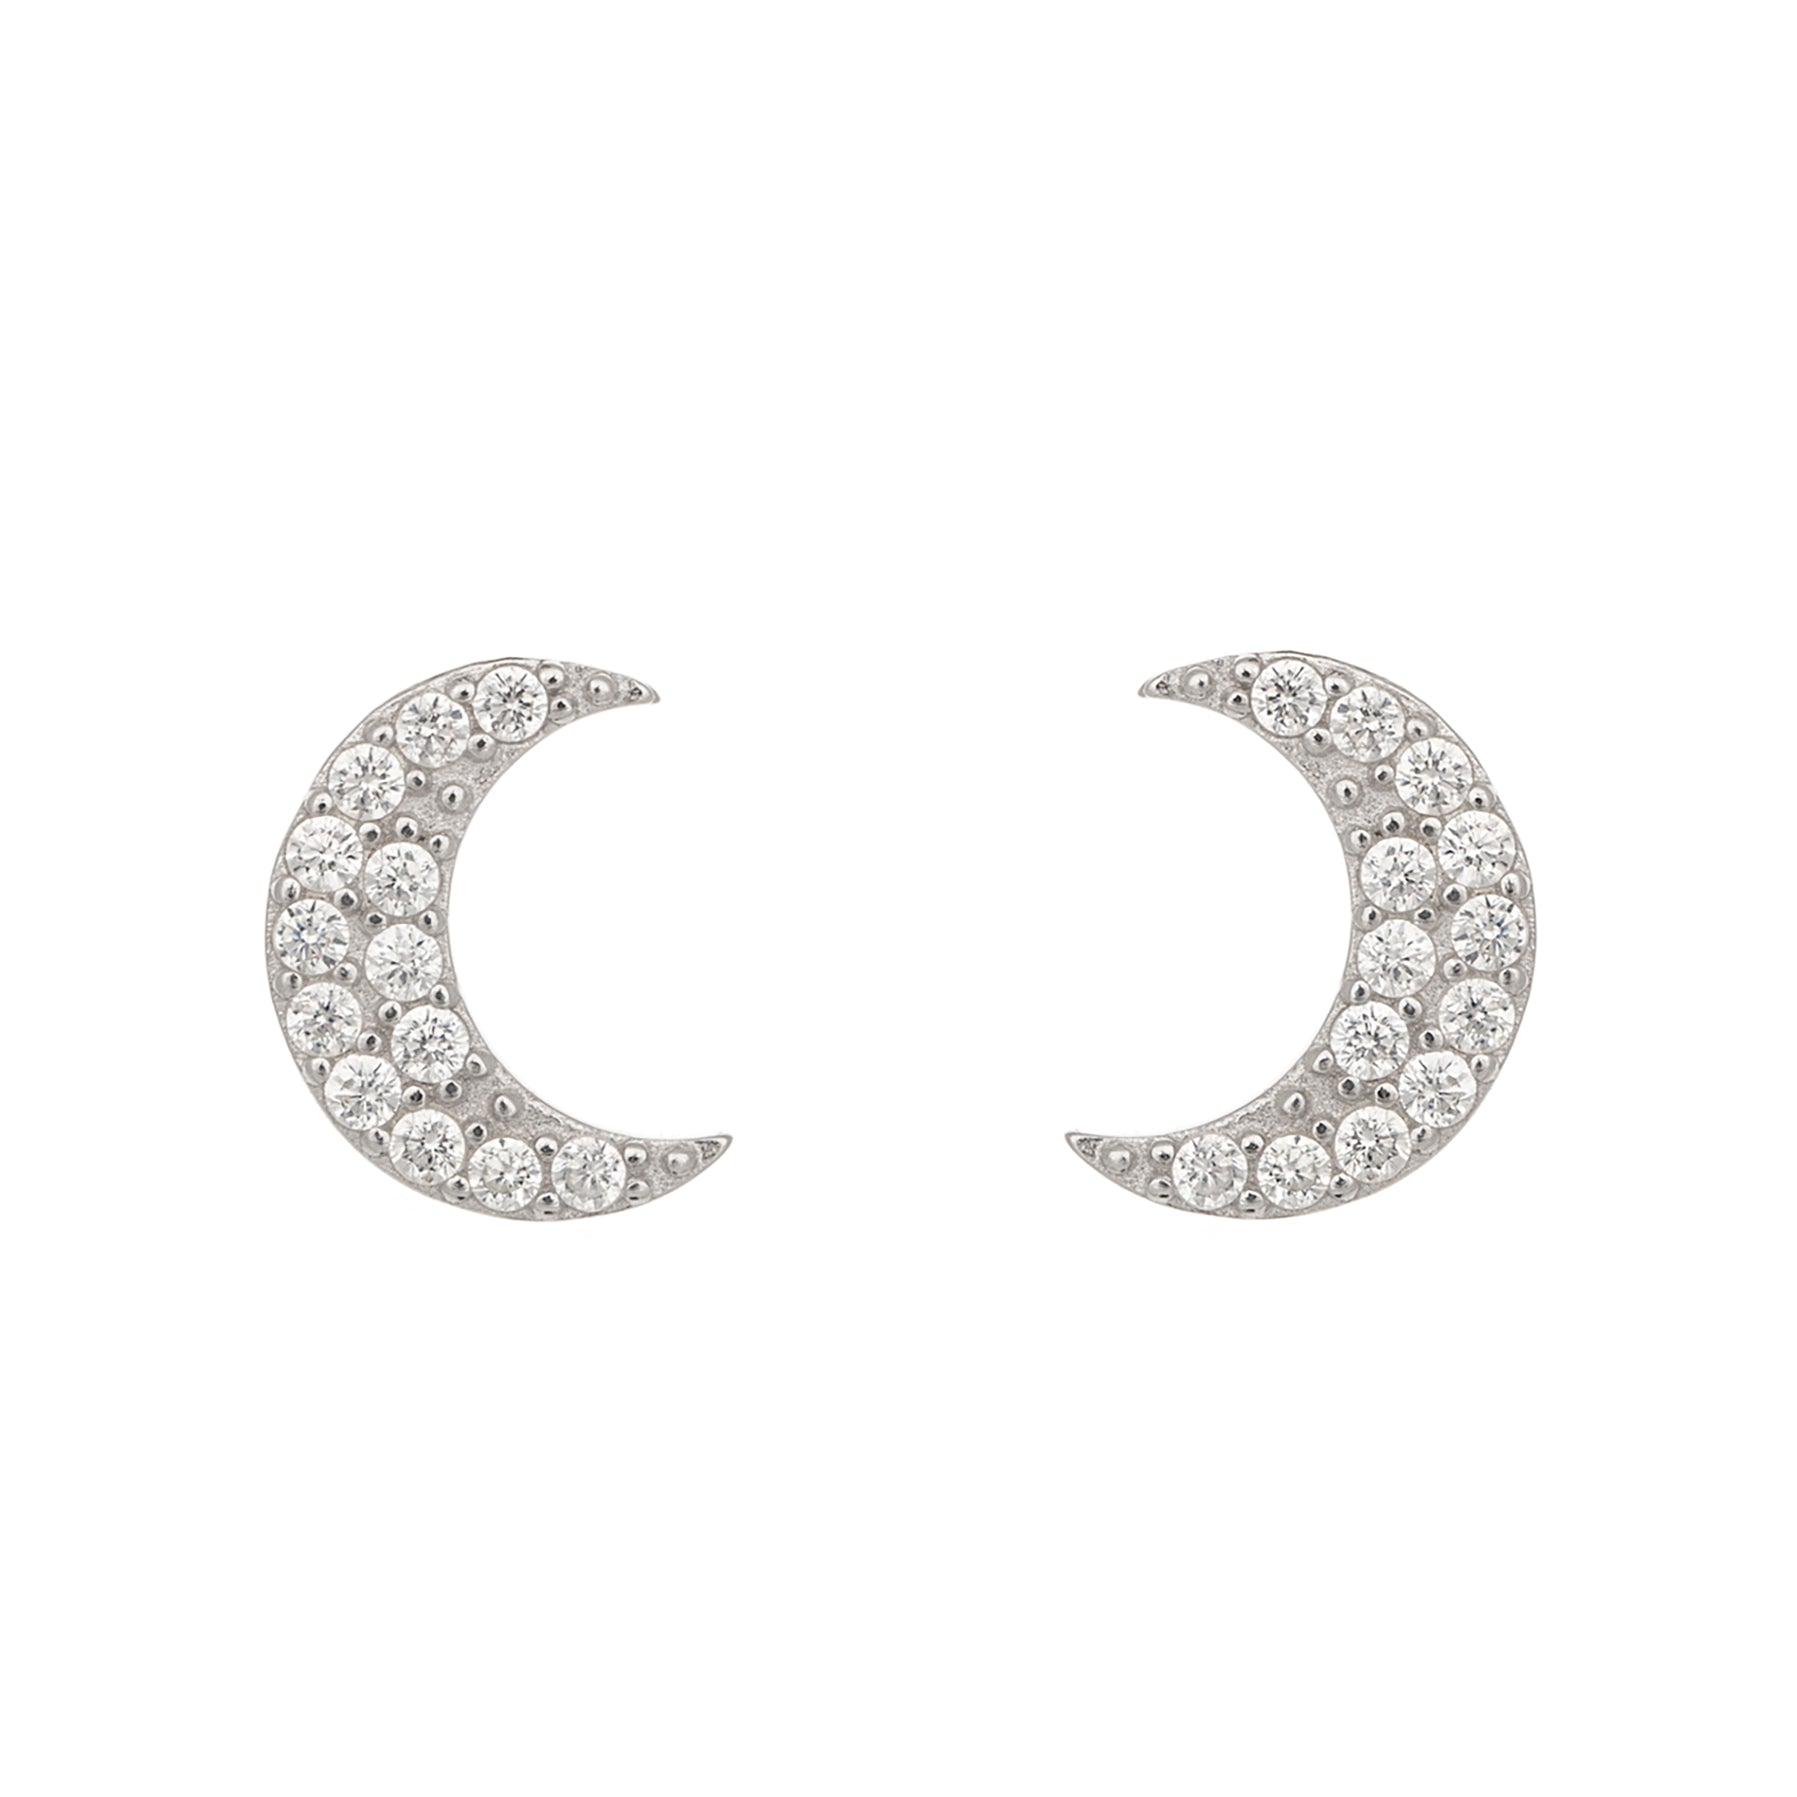 Glistening moon earrings